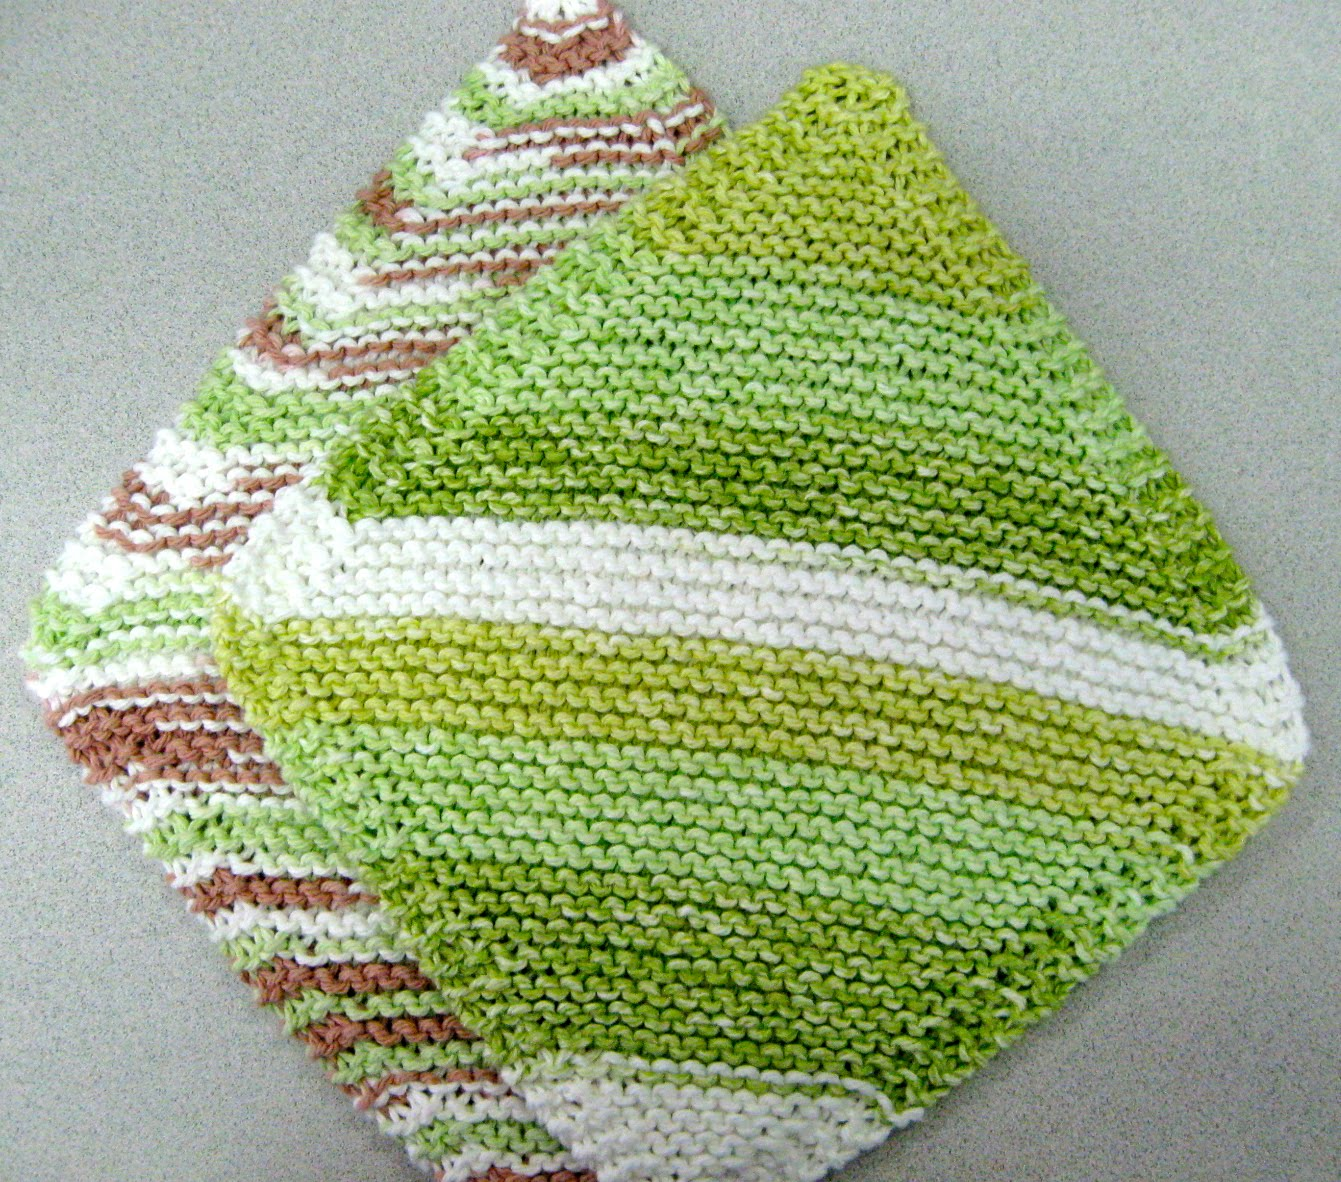 Knitting Dishcloths Easy : Say it ain t so easy knit dishcloths